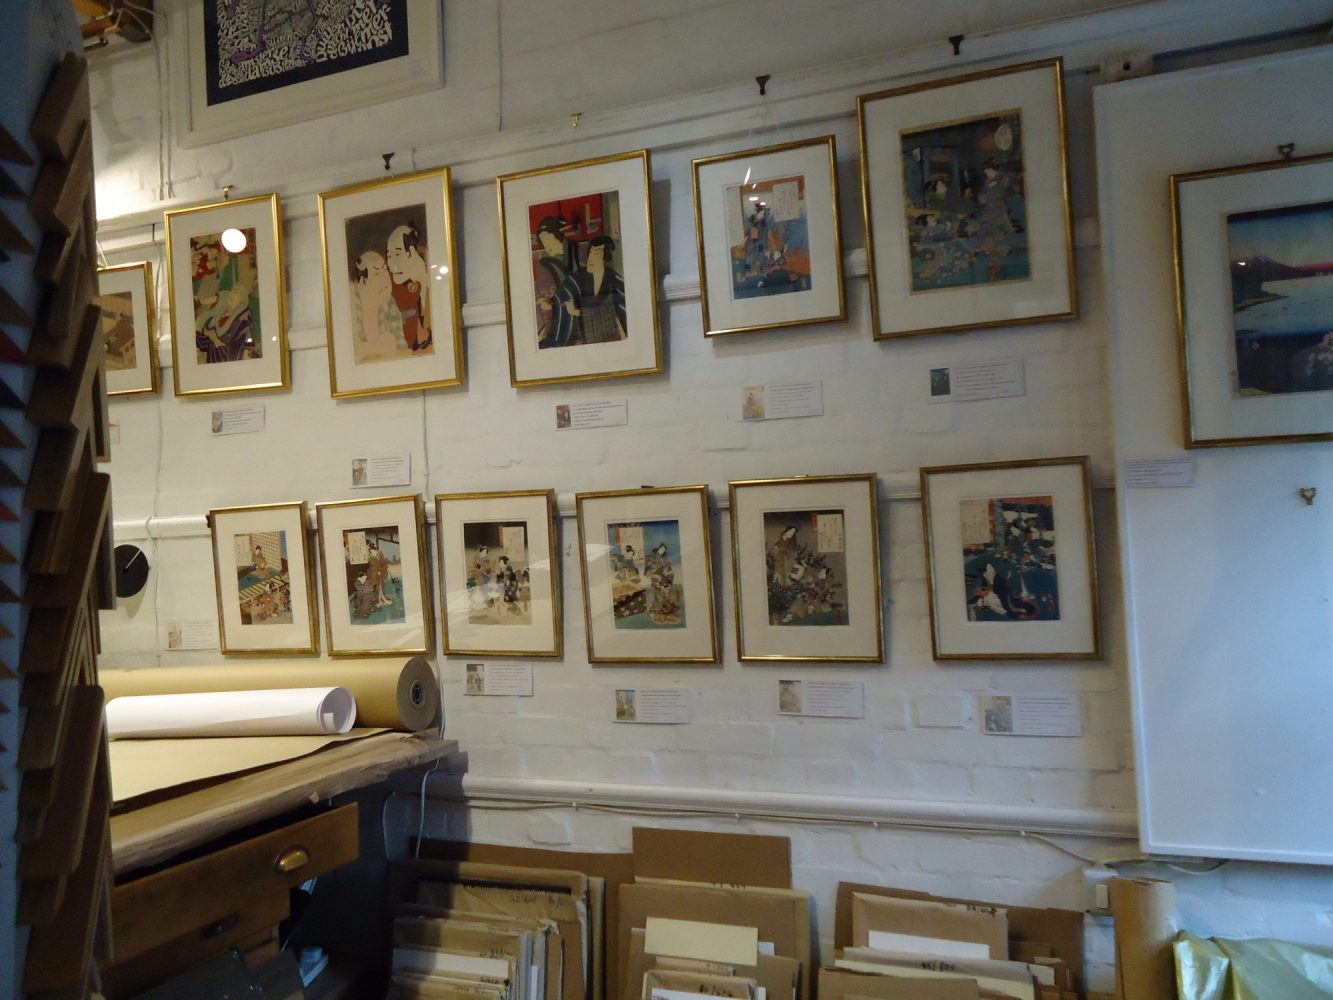 Temporary Exhibitions at Frameworks Crouch End, Picture framers in North London